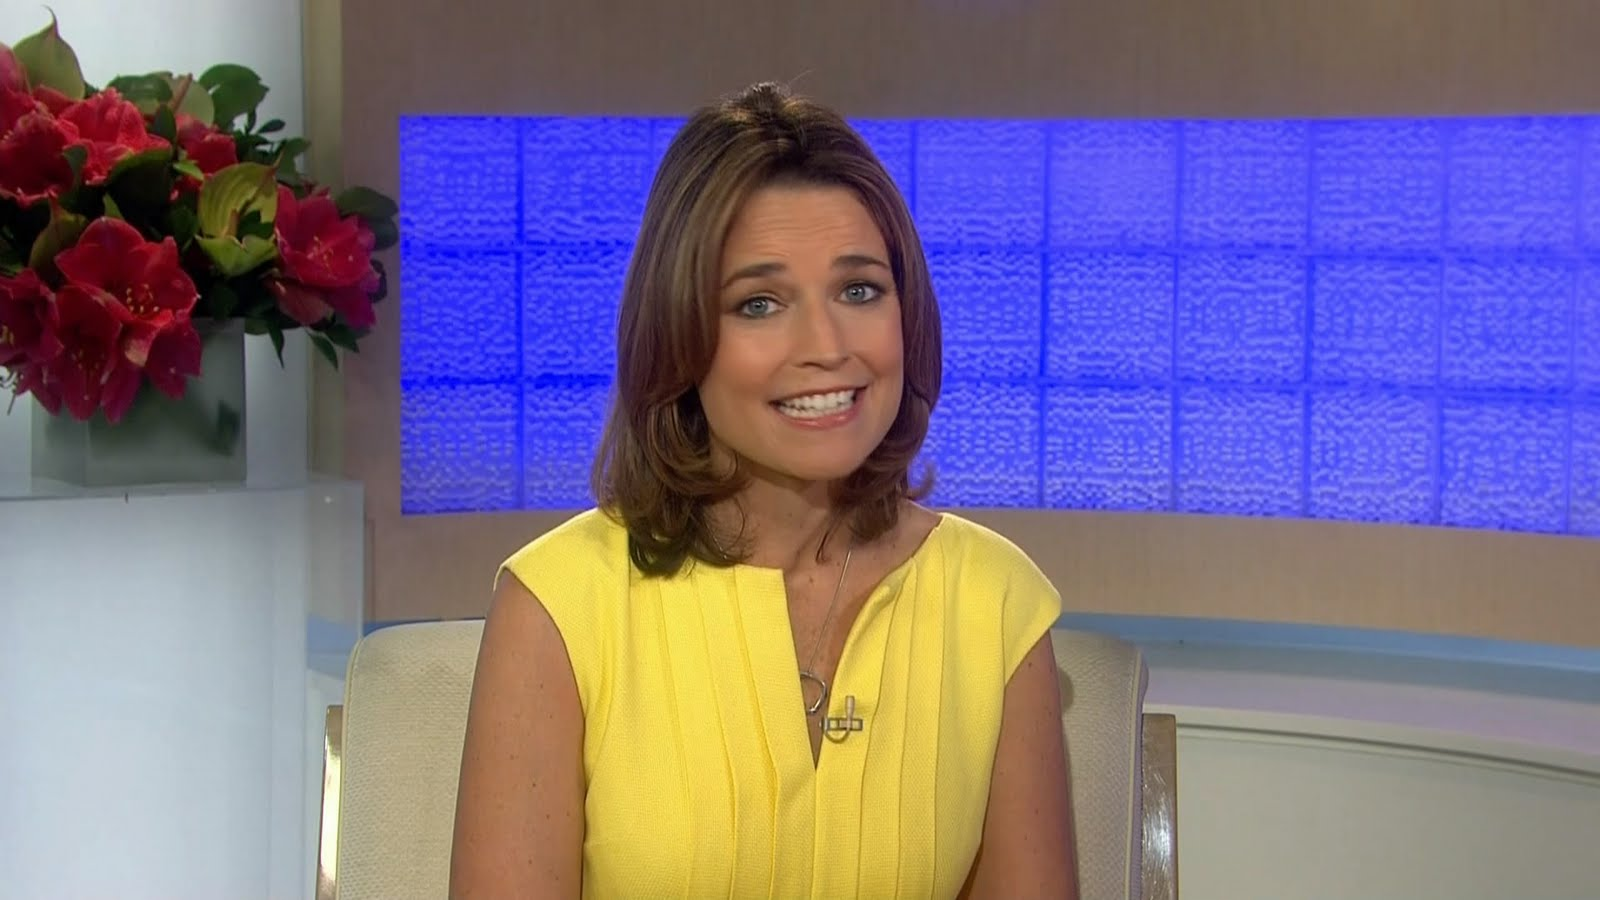 Savannah Guthrie Feet http://orangecrateart.tumblr.com/post/1546150692